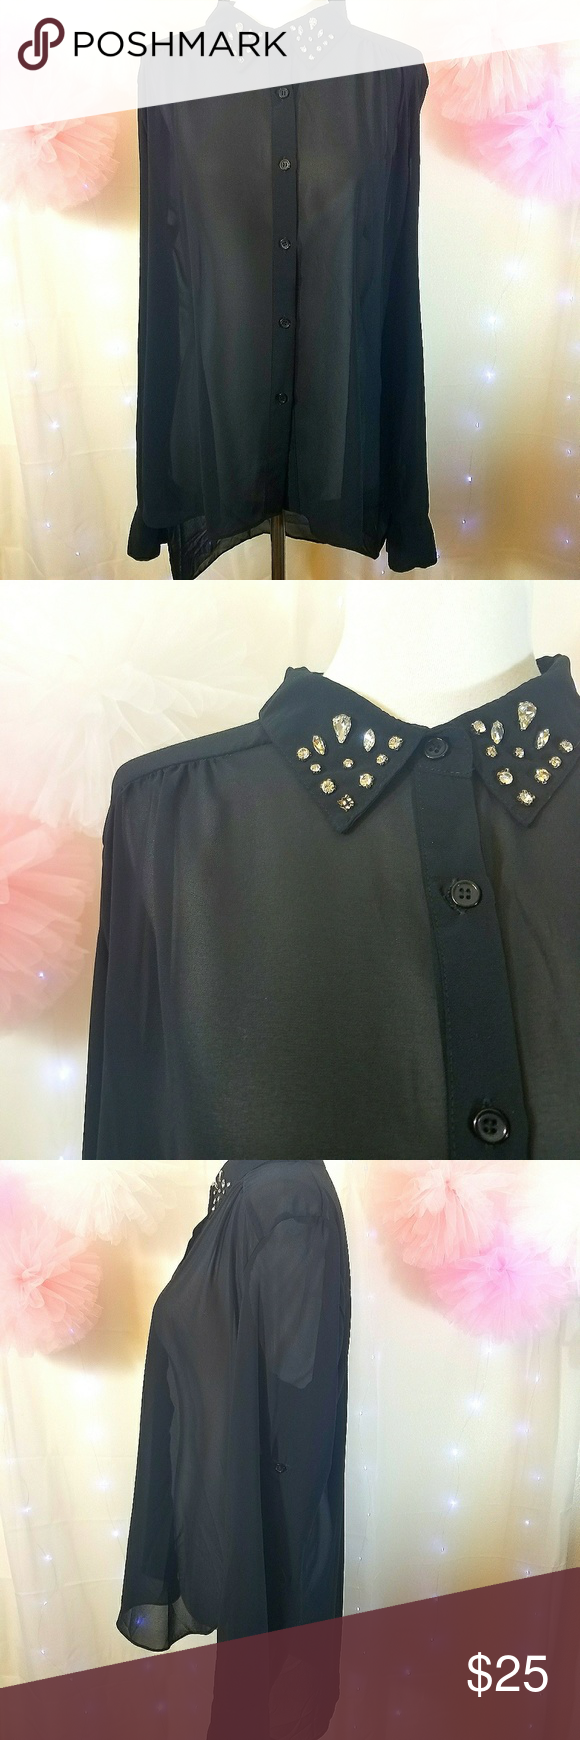 Sans Souci Sheer Blouse Sans Souci Sheer Blouse  Black sheer blouse by Sans Souci with rhinestone embellishments on collar. Size XL. No rips or stains. Please let me know if you have any questions. Sans Souci Tops Blouses